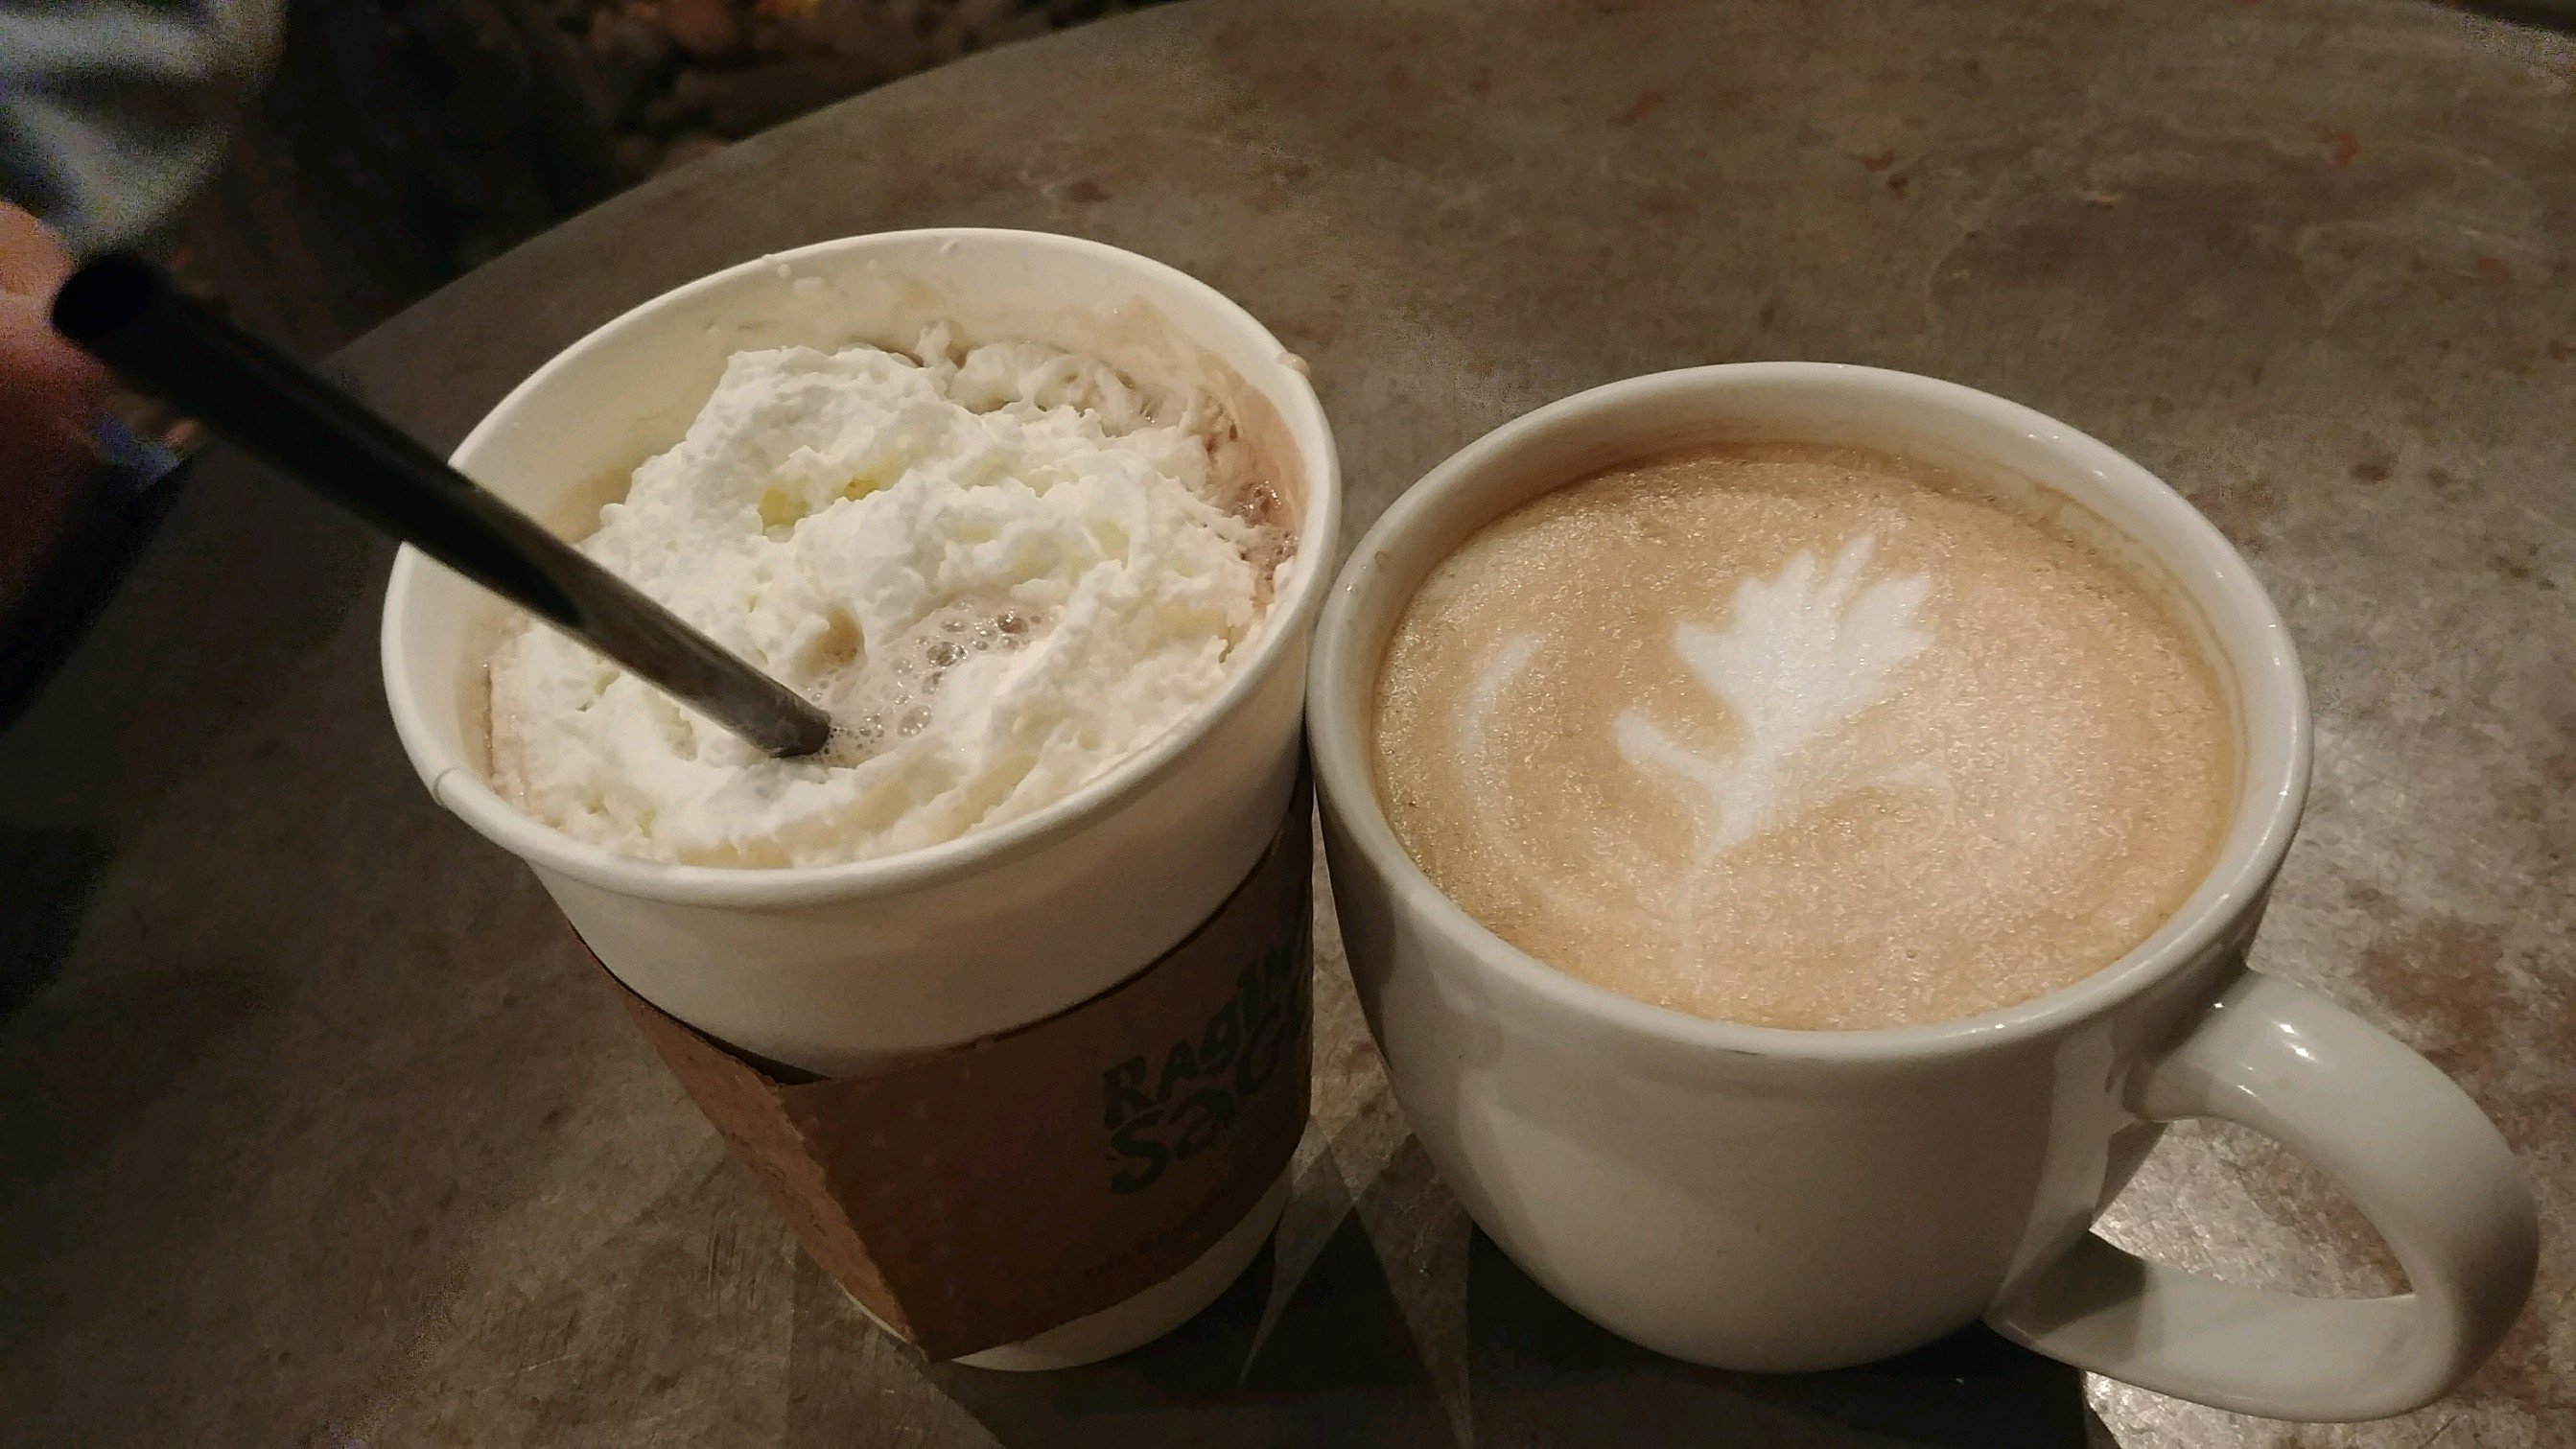 Ginger green tea with lemon and a coconut latte